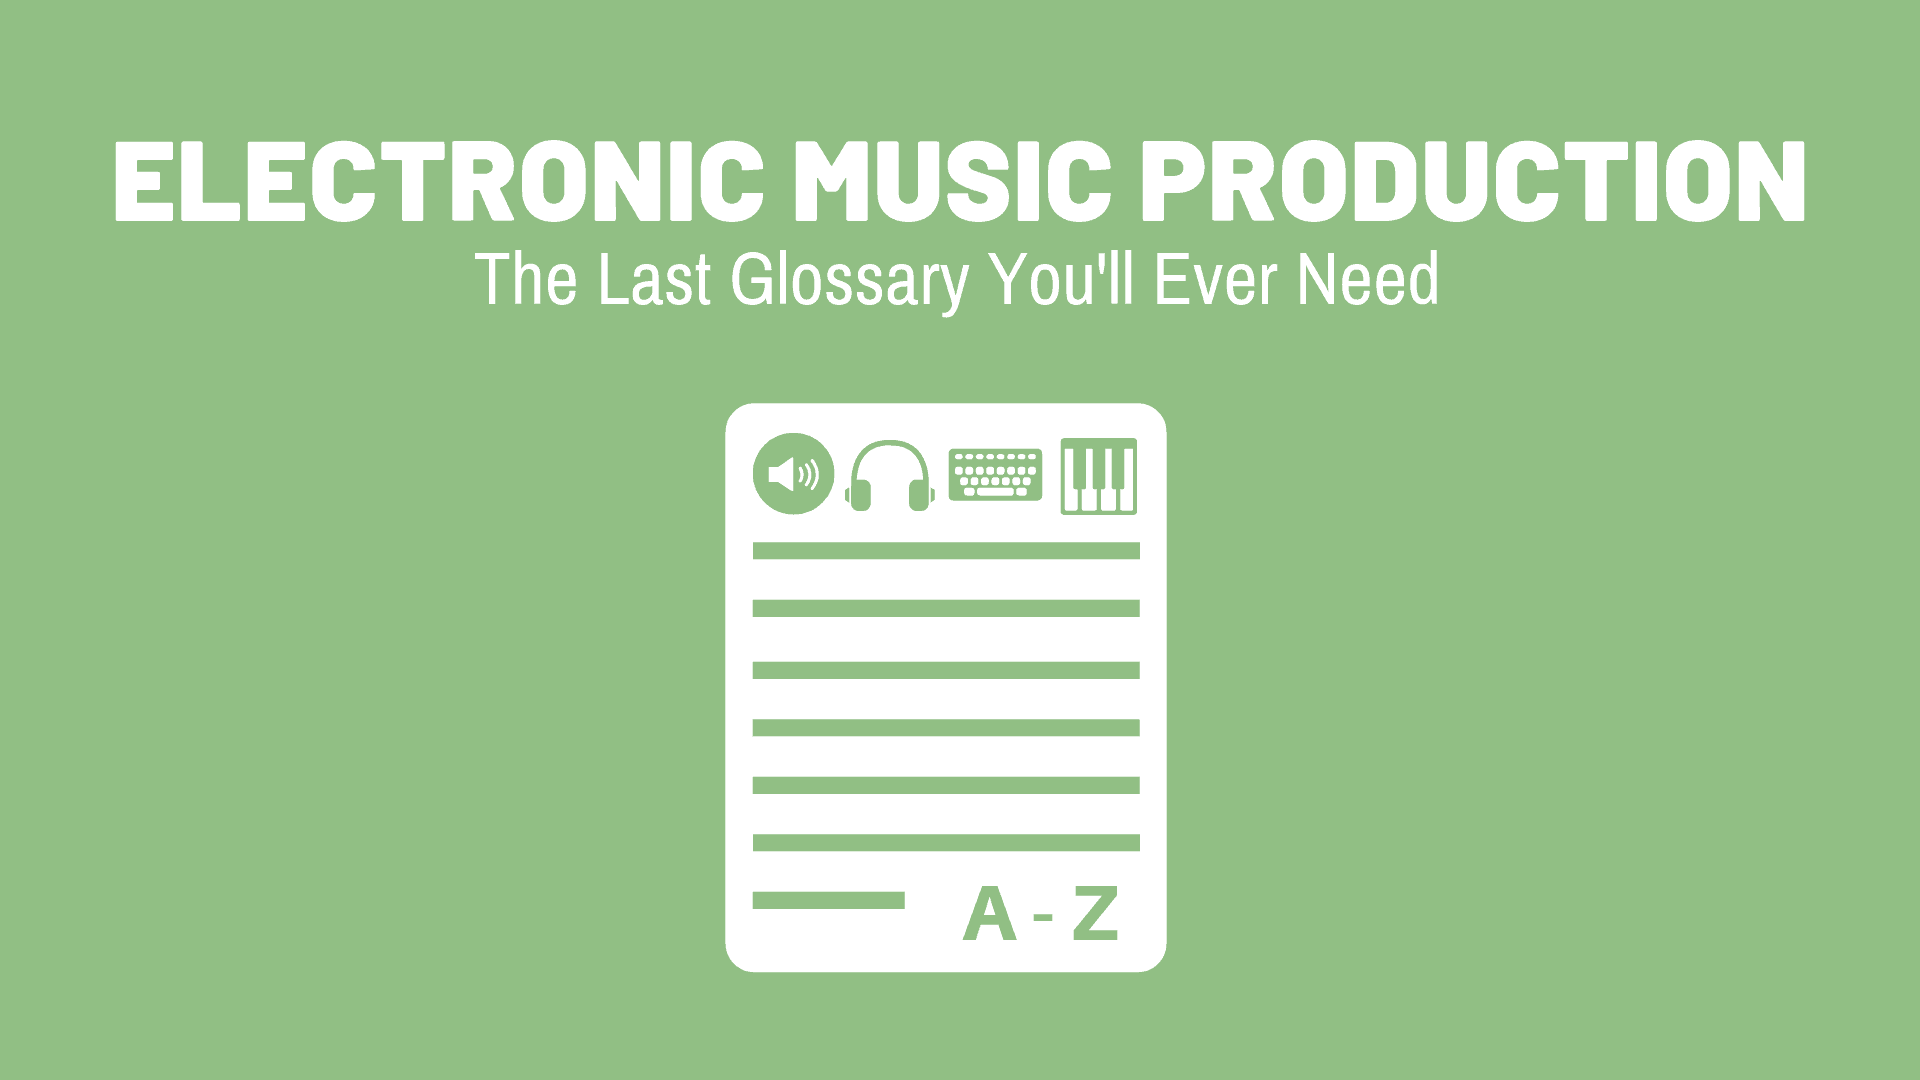 Electronic Music Production - The Last Glossary You'll Ever Need